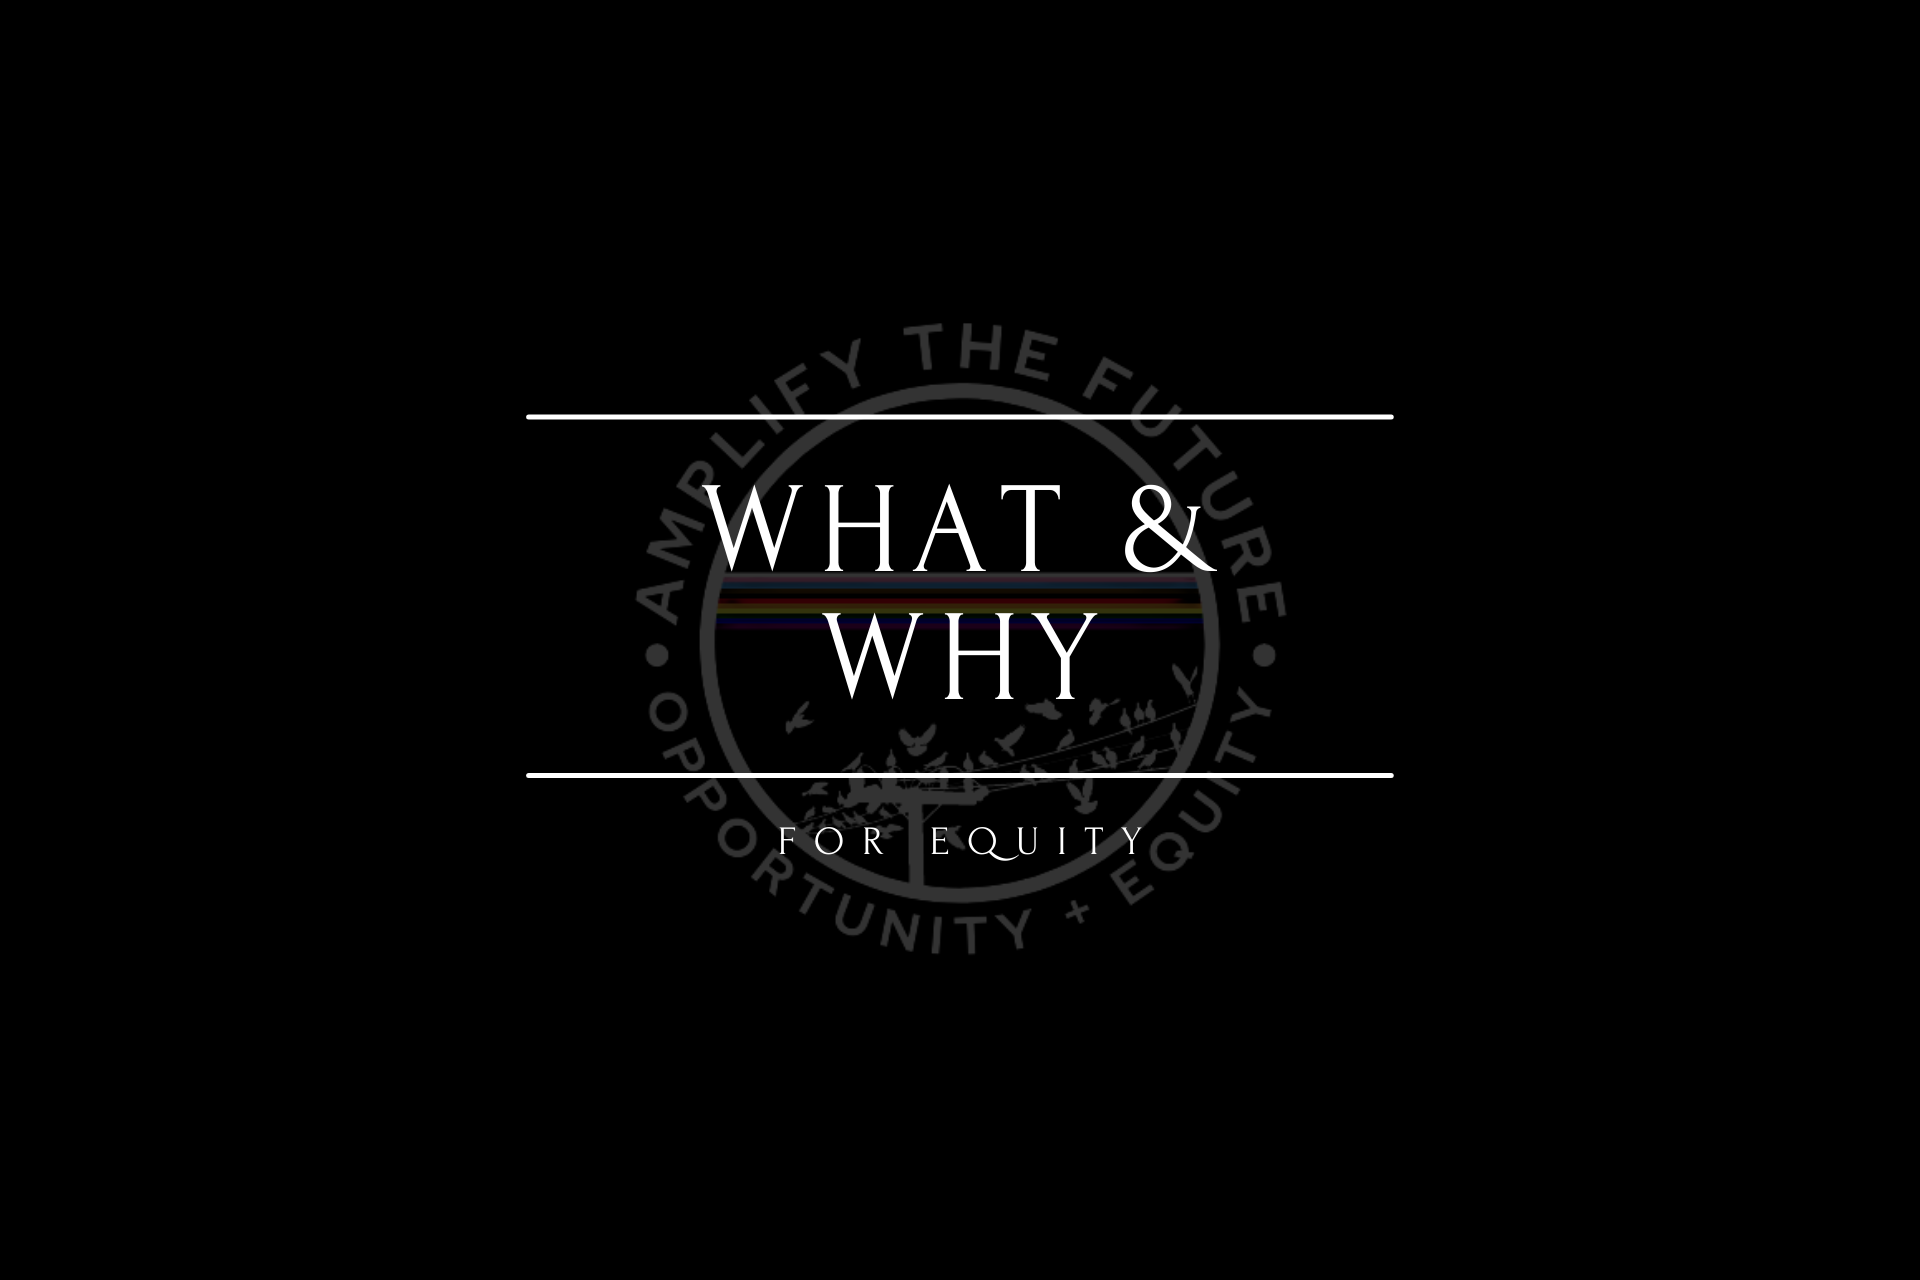 Text: What & Why: For Equity